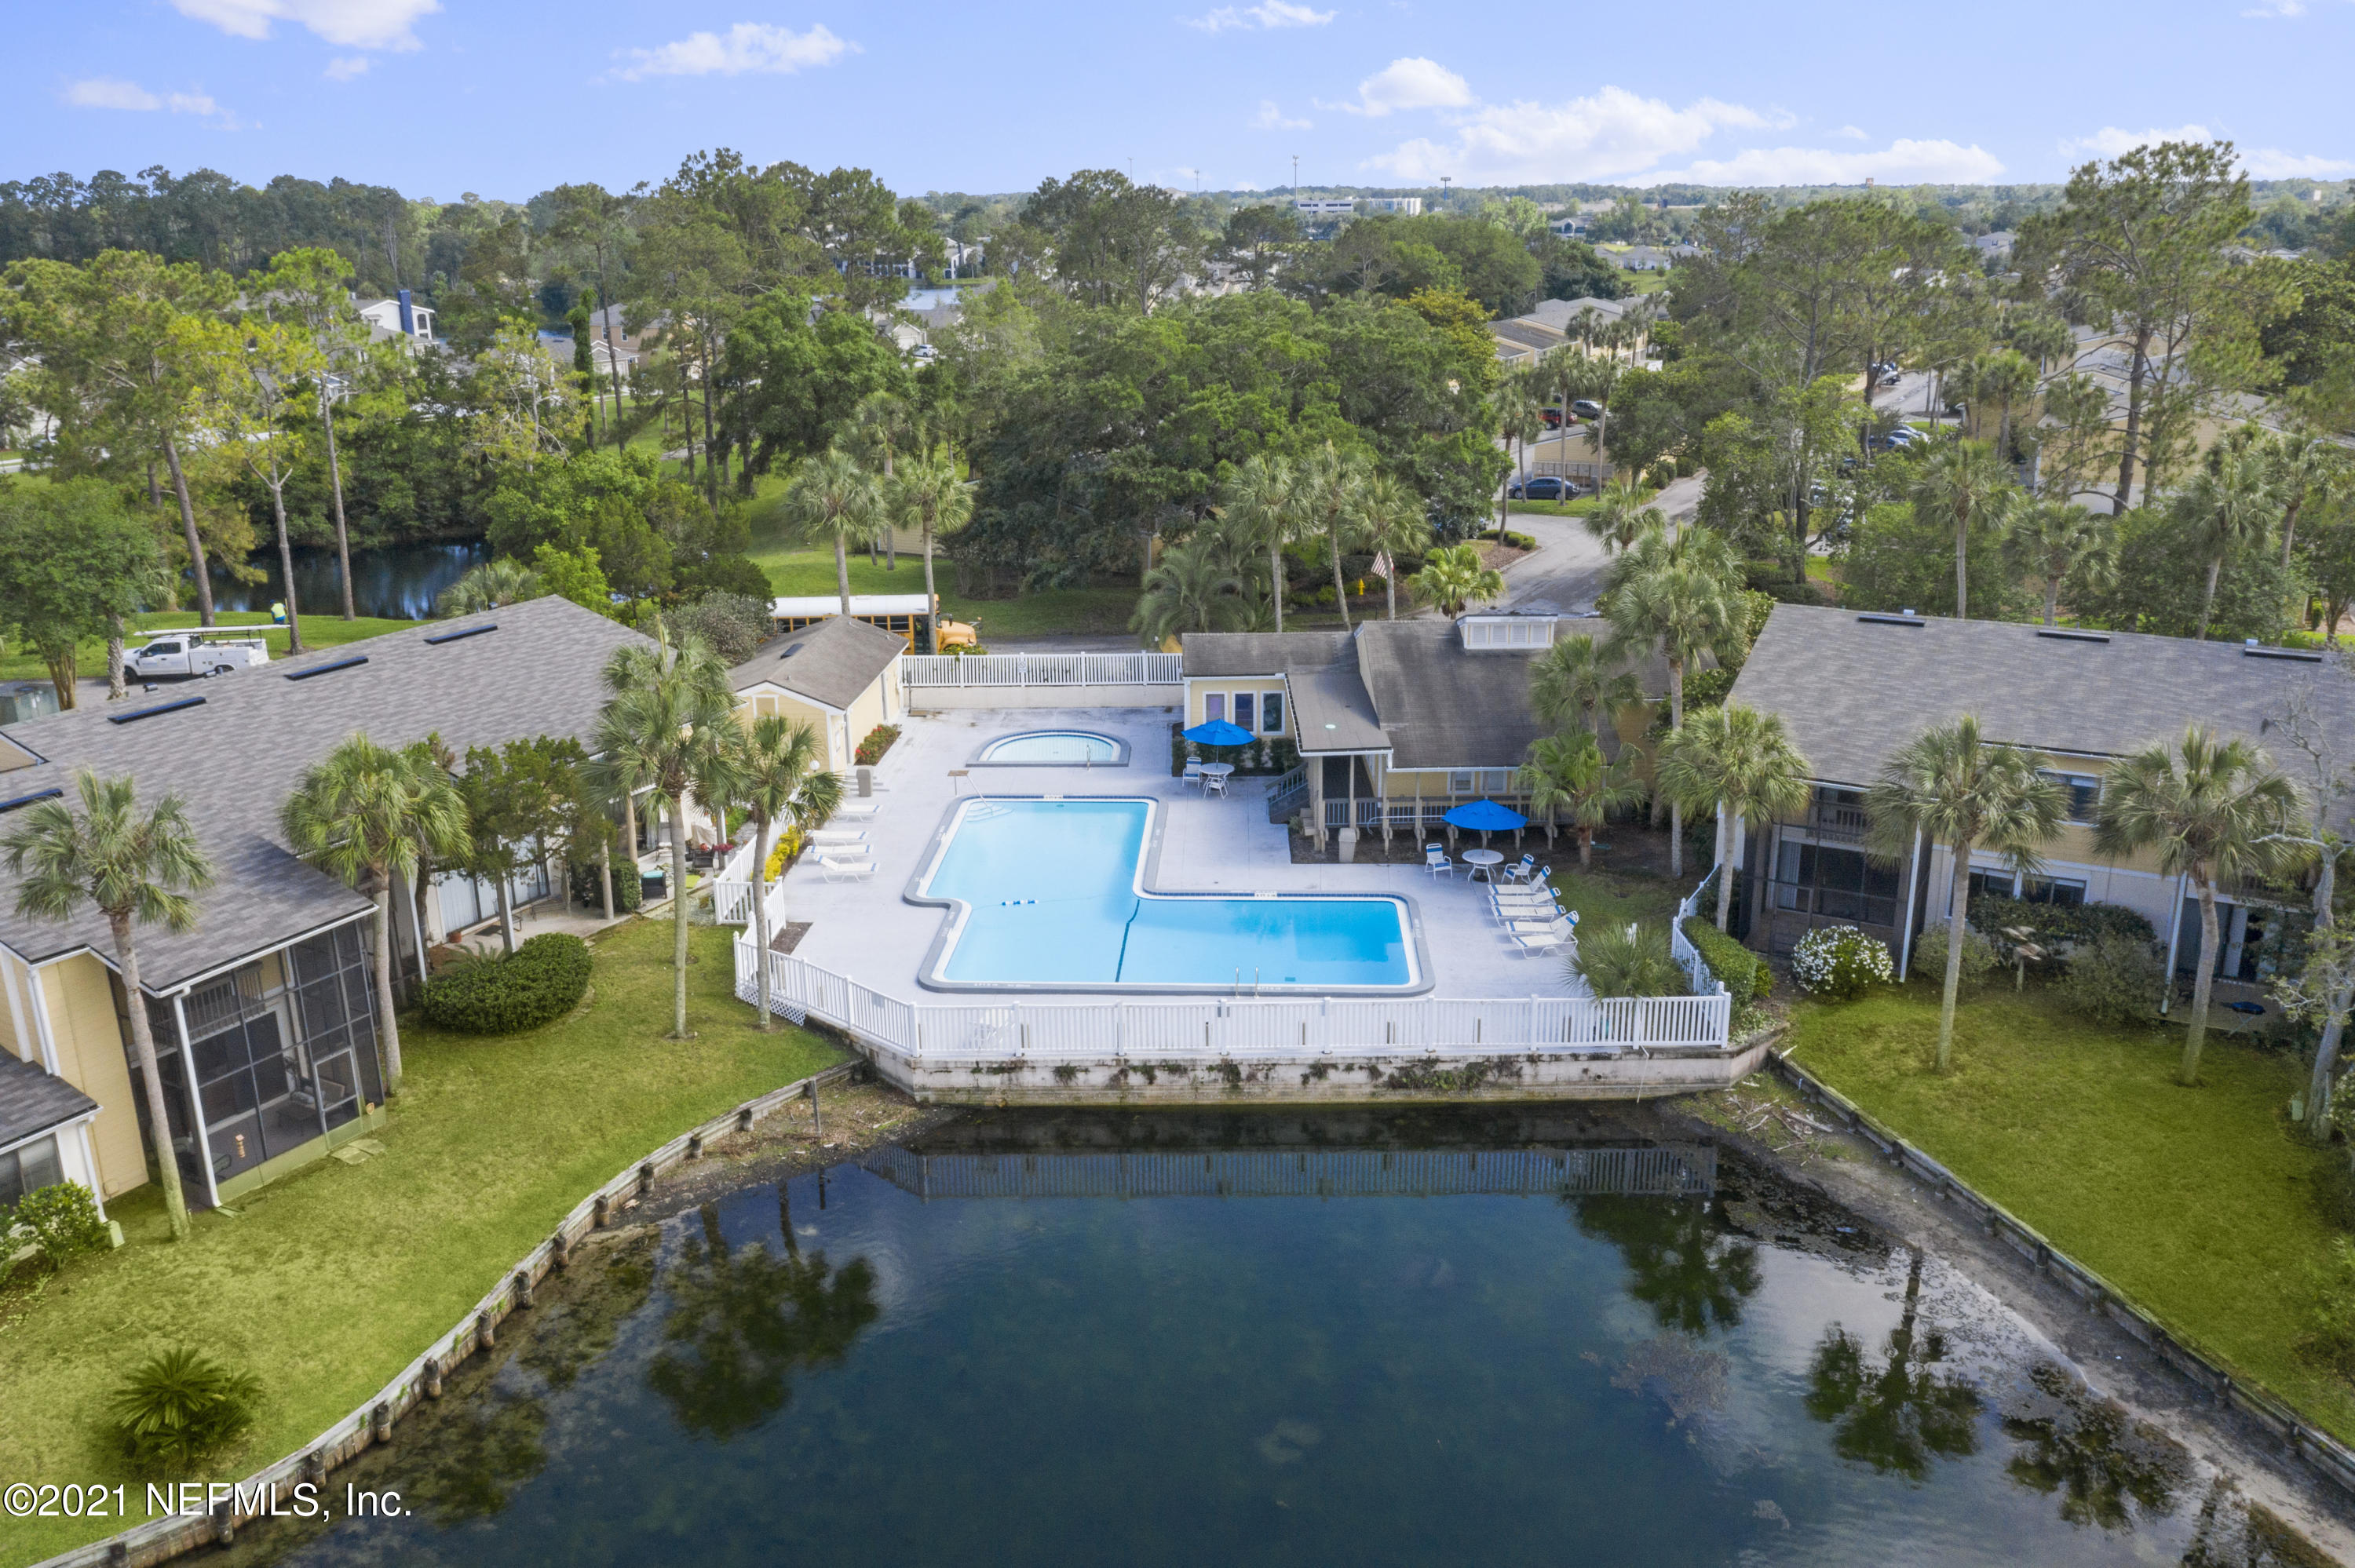 Ground floor 2 bedroom / 2 bath condo in quiet well-established Baymeadows community. Prime location overlooks green space, mature landscape and plenty of privacy. The home has been updated with new AC, newer water heater (2019), laminate floors, and updated bathrooms.  Large, over-sized bedrooms, adjoining bath in master, inside (enclosed) laundry and flex space for storage or to convert into a small office create well thought out living spaces. The spacious screened patio offers lovely views and access from both living and dining areas. This home includes a carport and storage area conveniently located near the unit.  Community amenities include clubhouse, pool, children's pool, nature trails and a dog park. Association fees include water, sewer and daily trash pick up from your door. This incredible location is convenient to shopping, restaurants, schools, major through roads and employment centers.